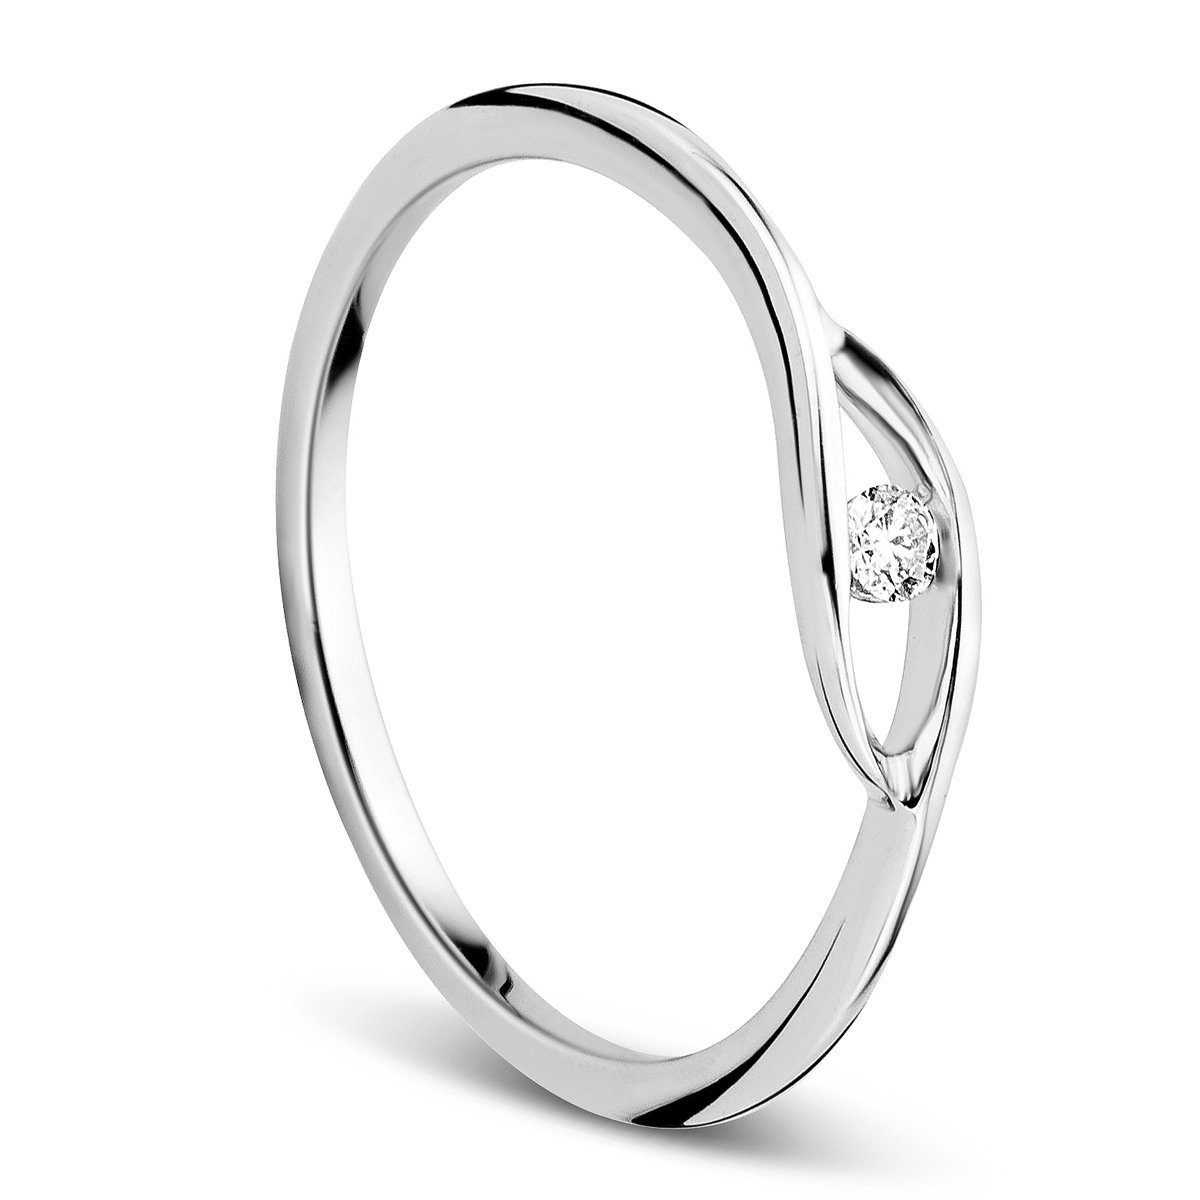 Orovi Women S Ring White Gold 9 Carat 375 Gold Solitaire